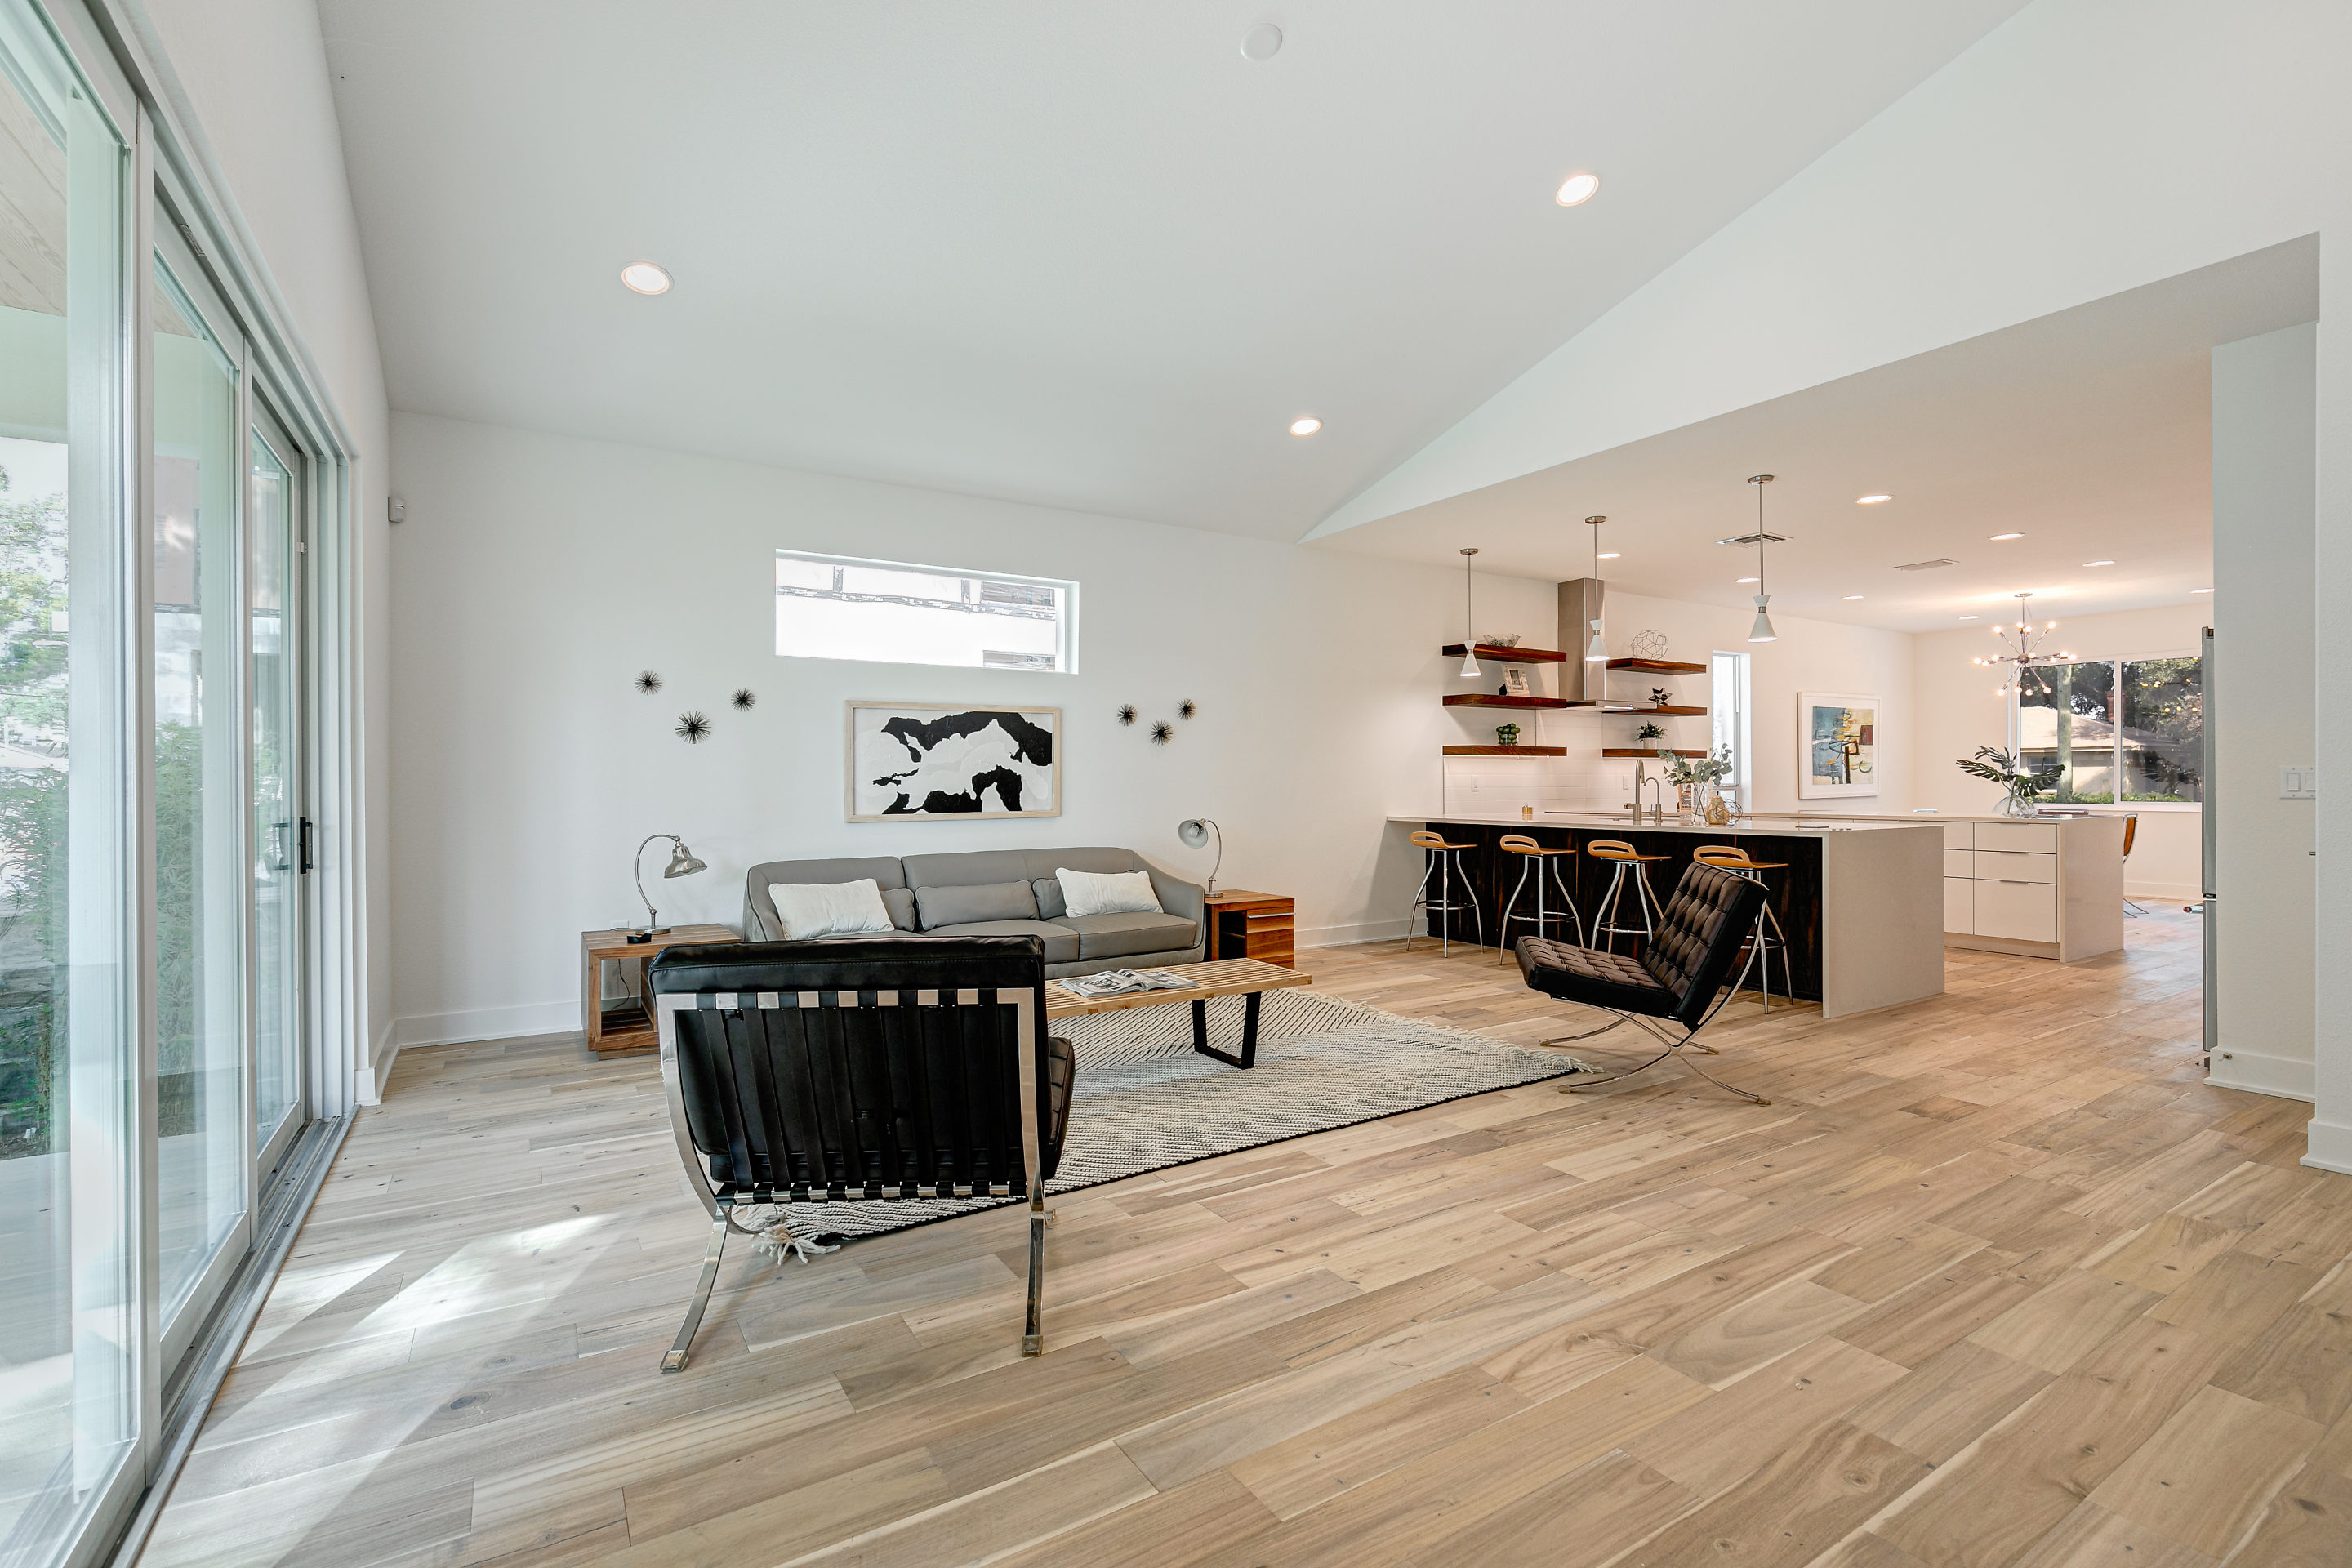 Living Room that flows into Kitchen